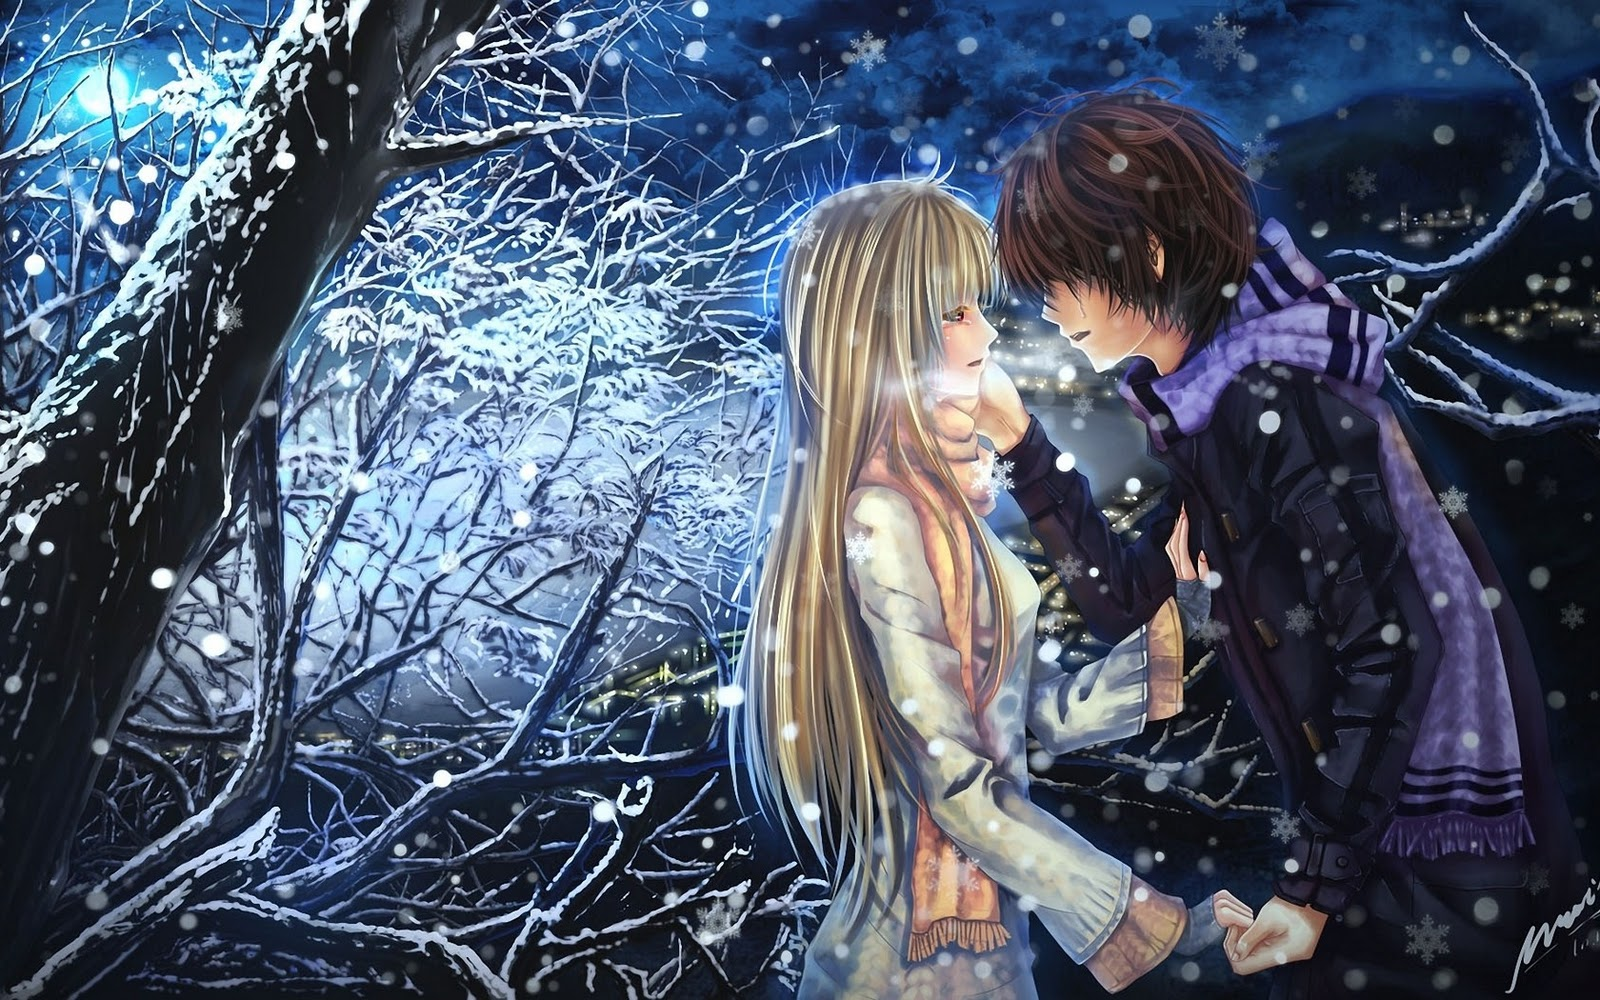 Hot Love couple Wallpaper Hd : A2Z Wallpapers: Anime couples In Love Wallpapers